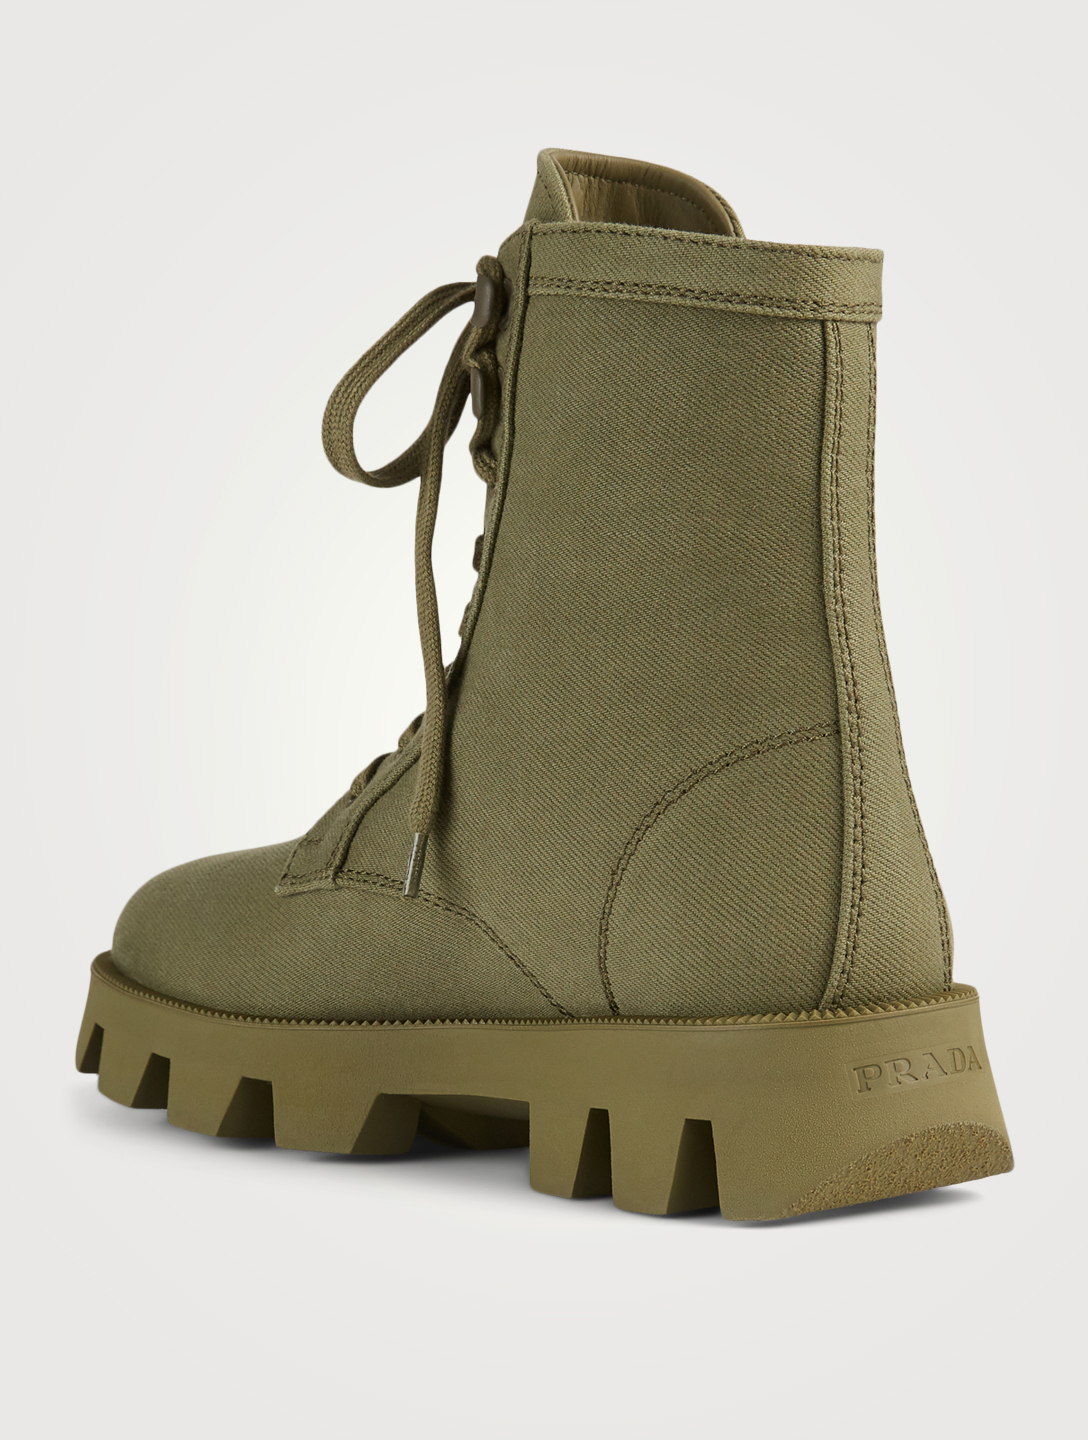 PRADA Canvas Combat Boots Women's Green